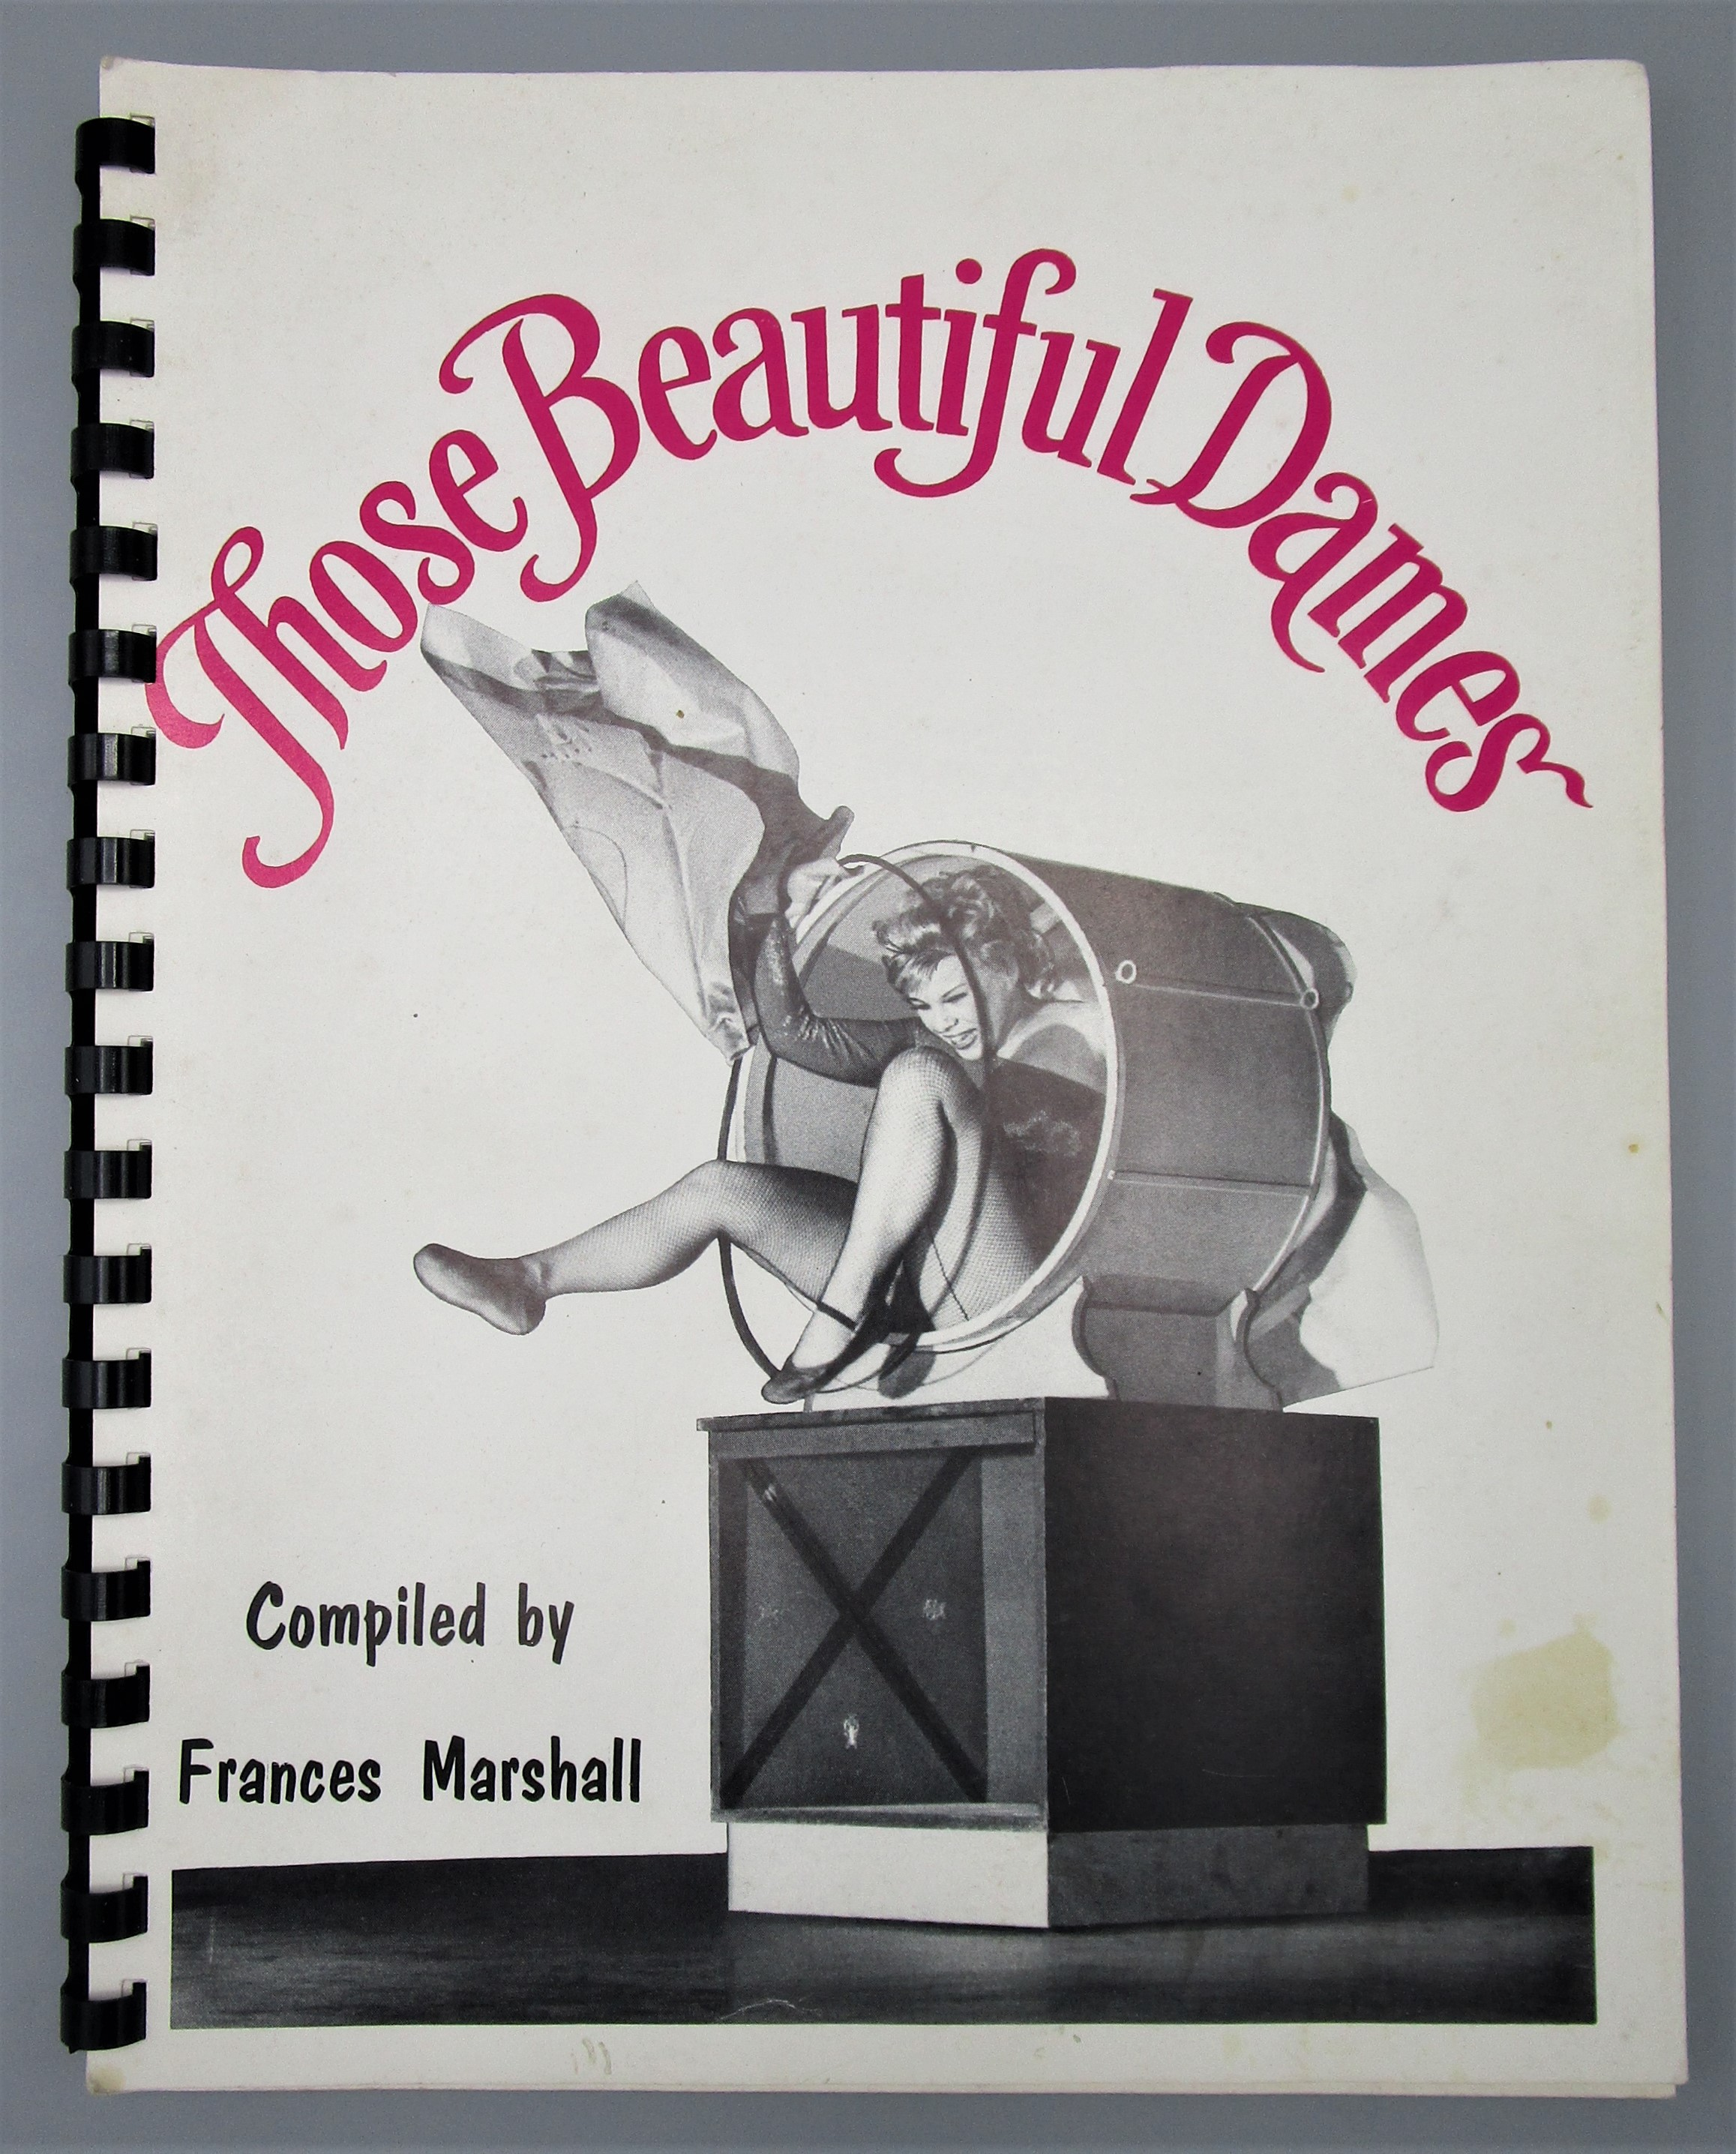 THOSE BEAUTIFUL DAMES, by Frances Marshall - 1984 [Signed]